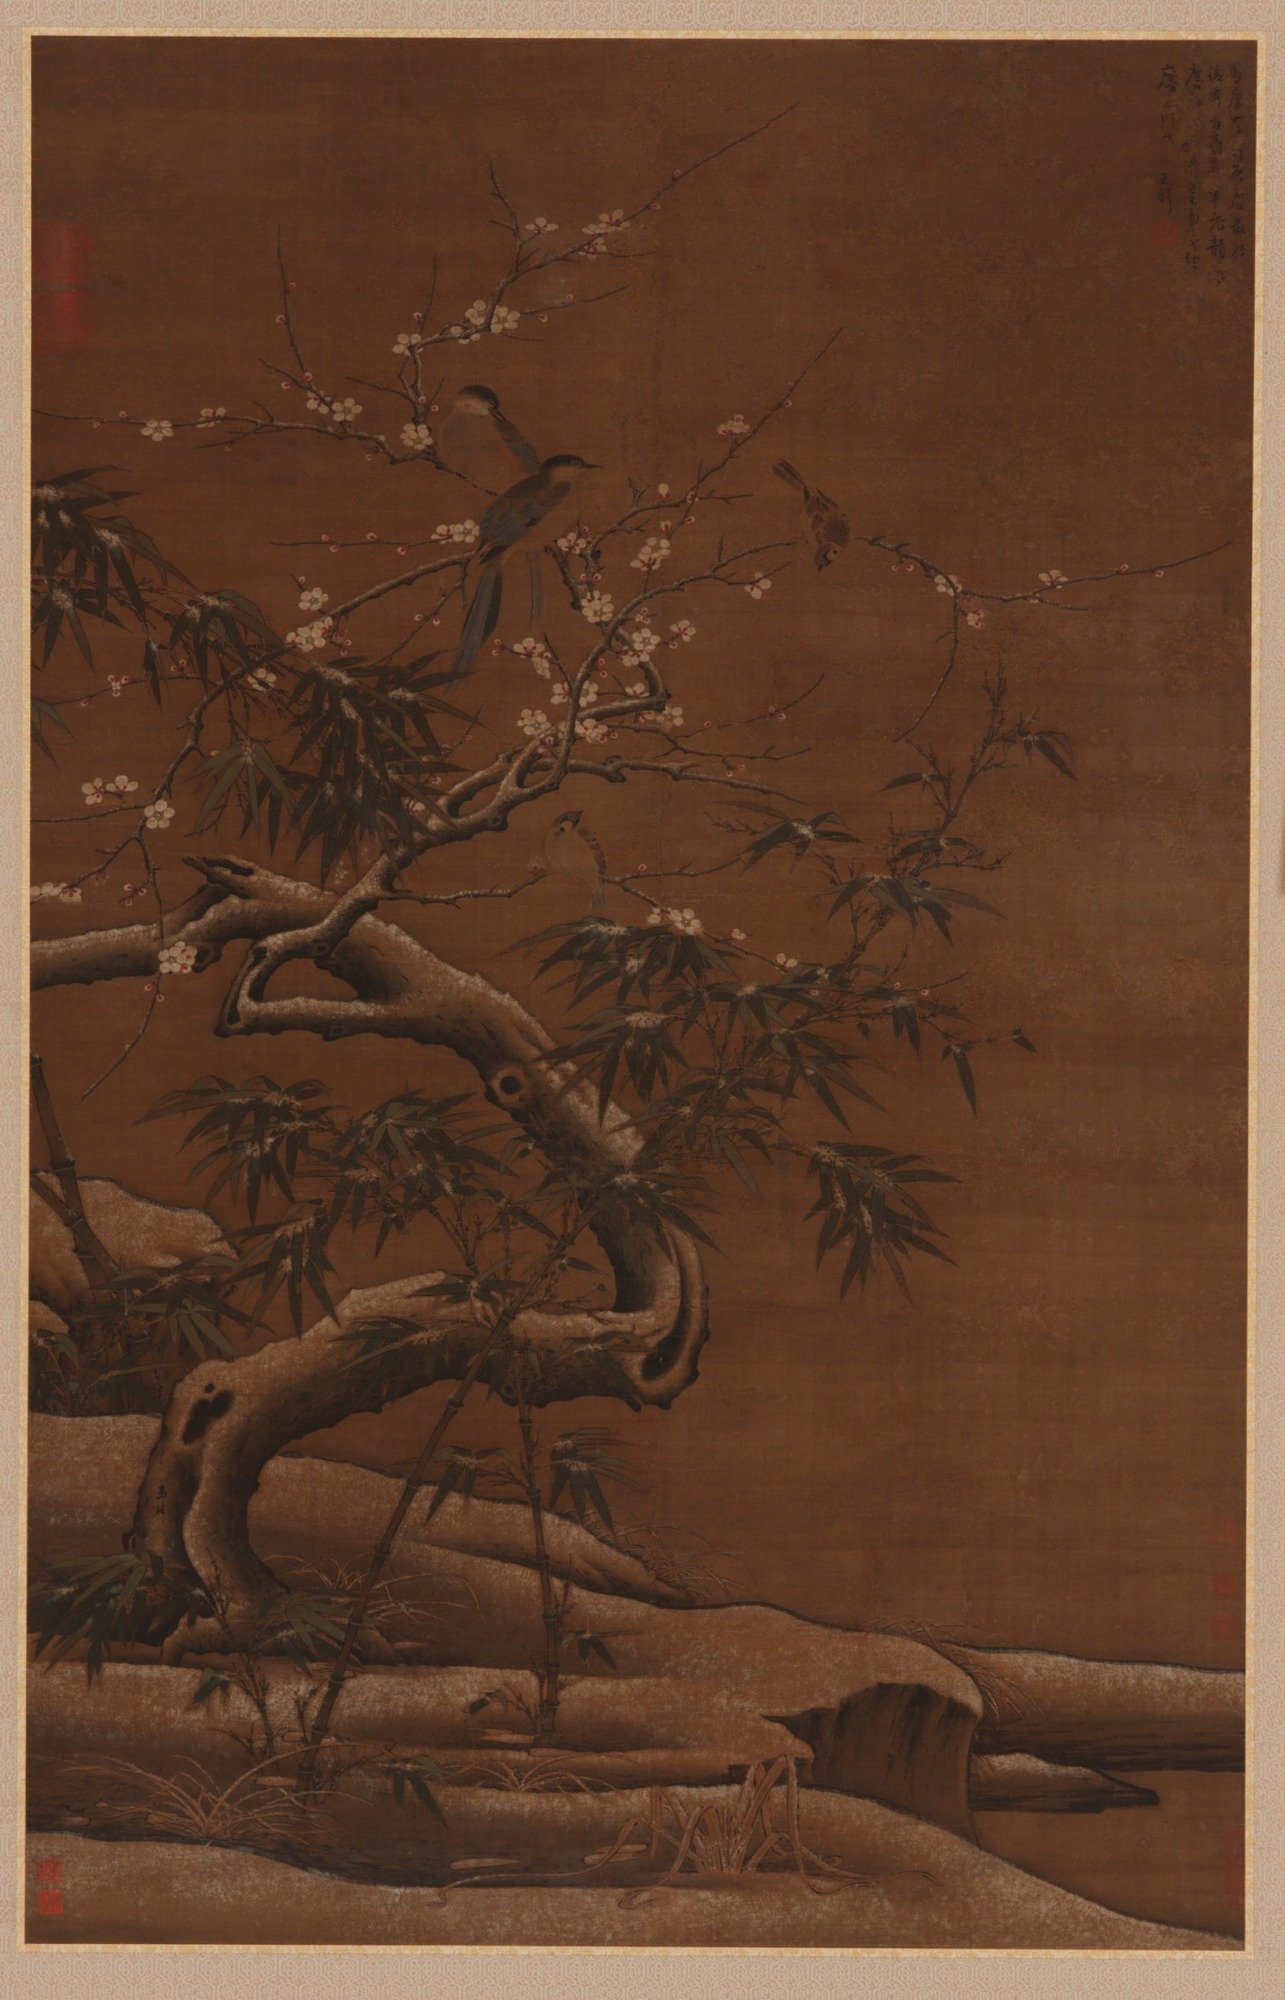 Birds, Plum Blossoms, and Bamboo in Winter